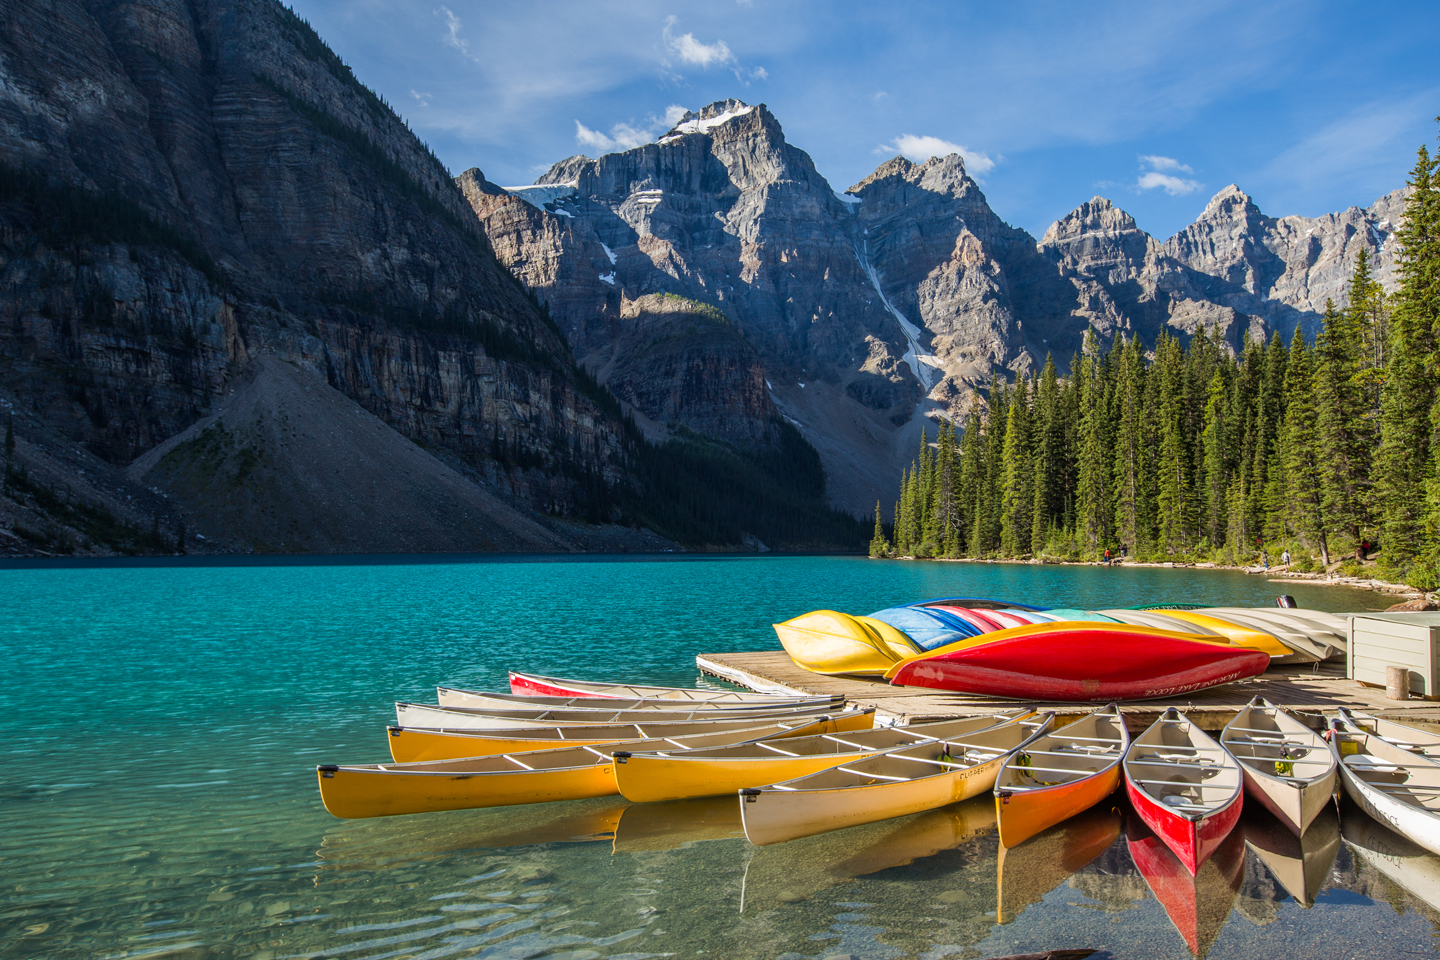 The Best Places to Visit in Banff National Park | Alberta, Canada